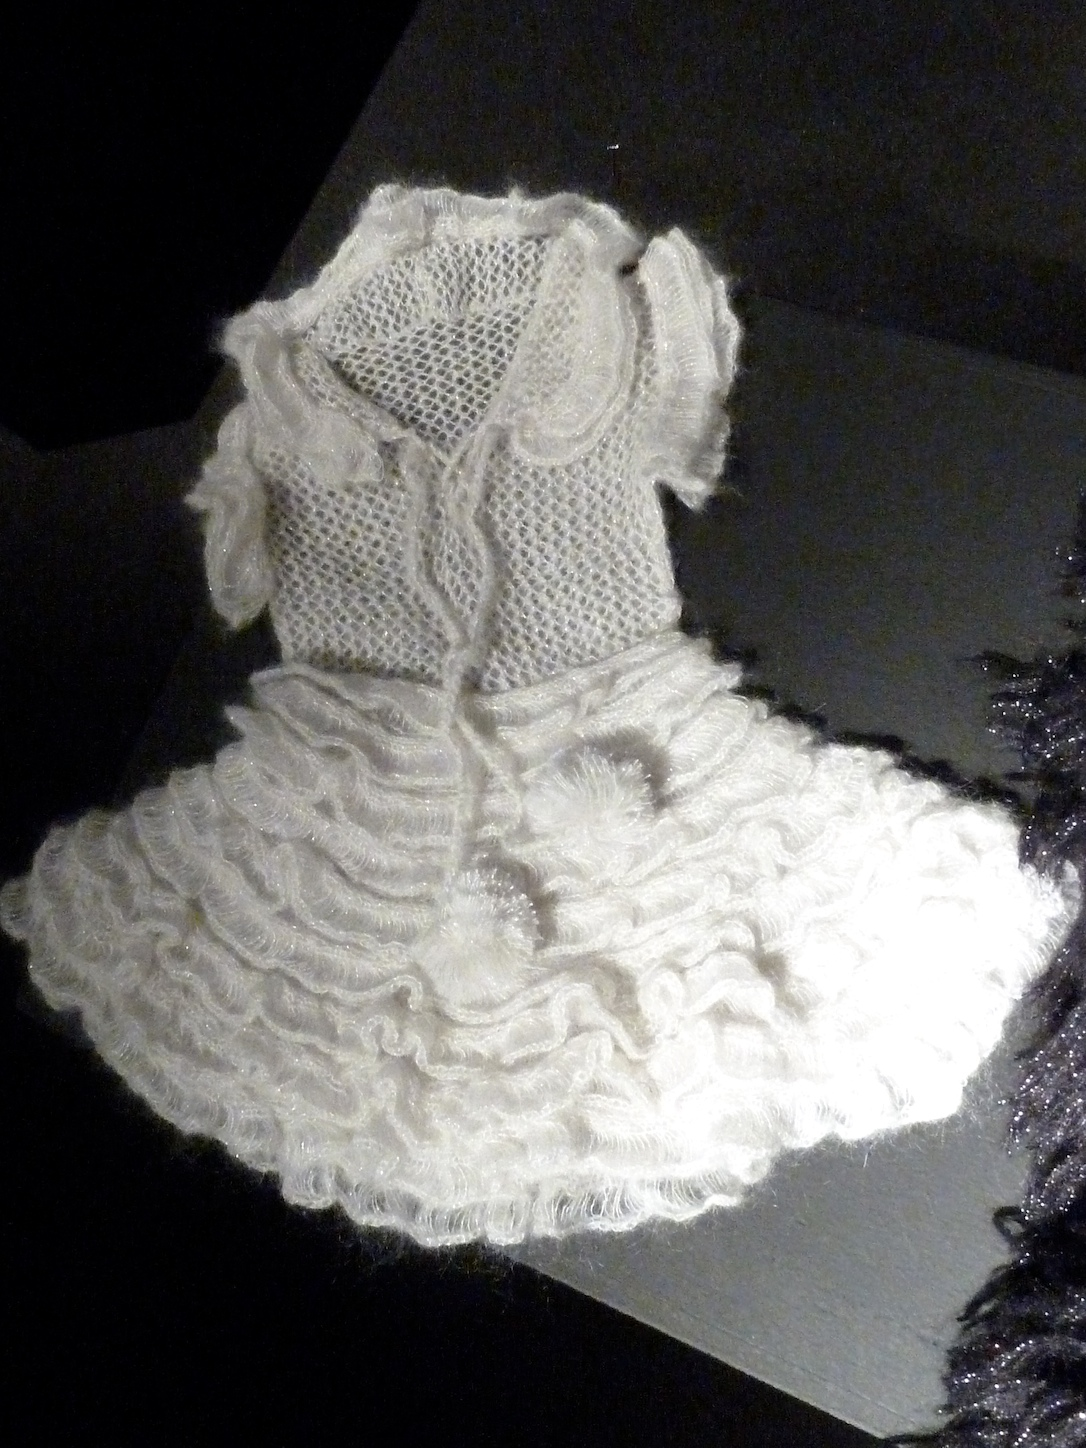 Cream wool baby dress for winter 2011, a new style from Bonnie Young